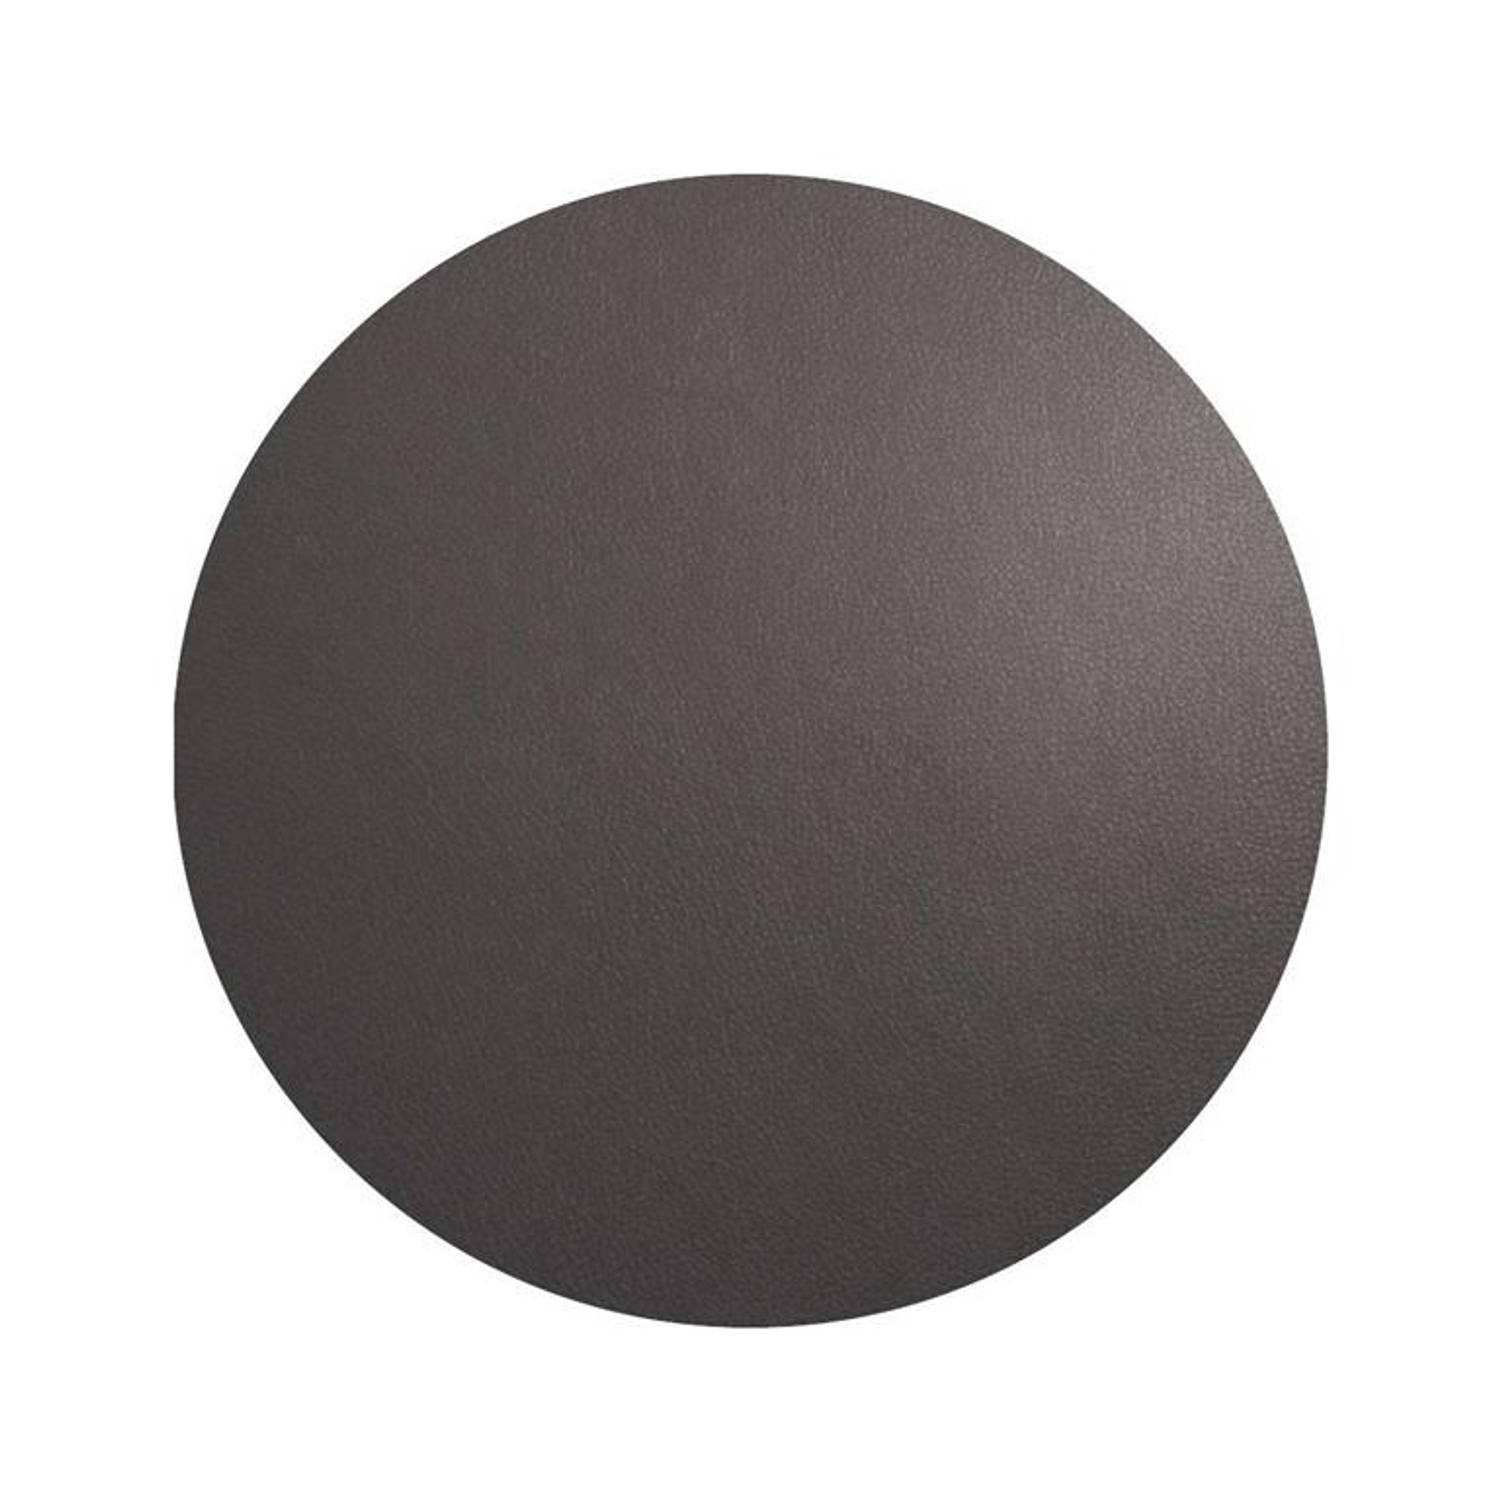 Korting Asa T Table Top Placemat Rond 38cm Basalt Leather